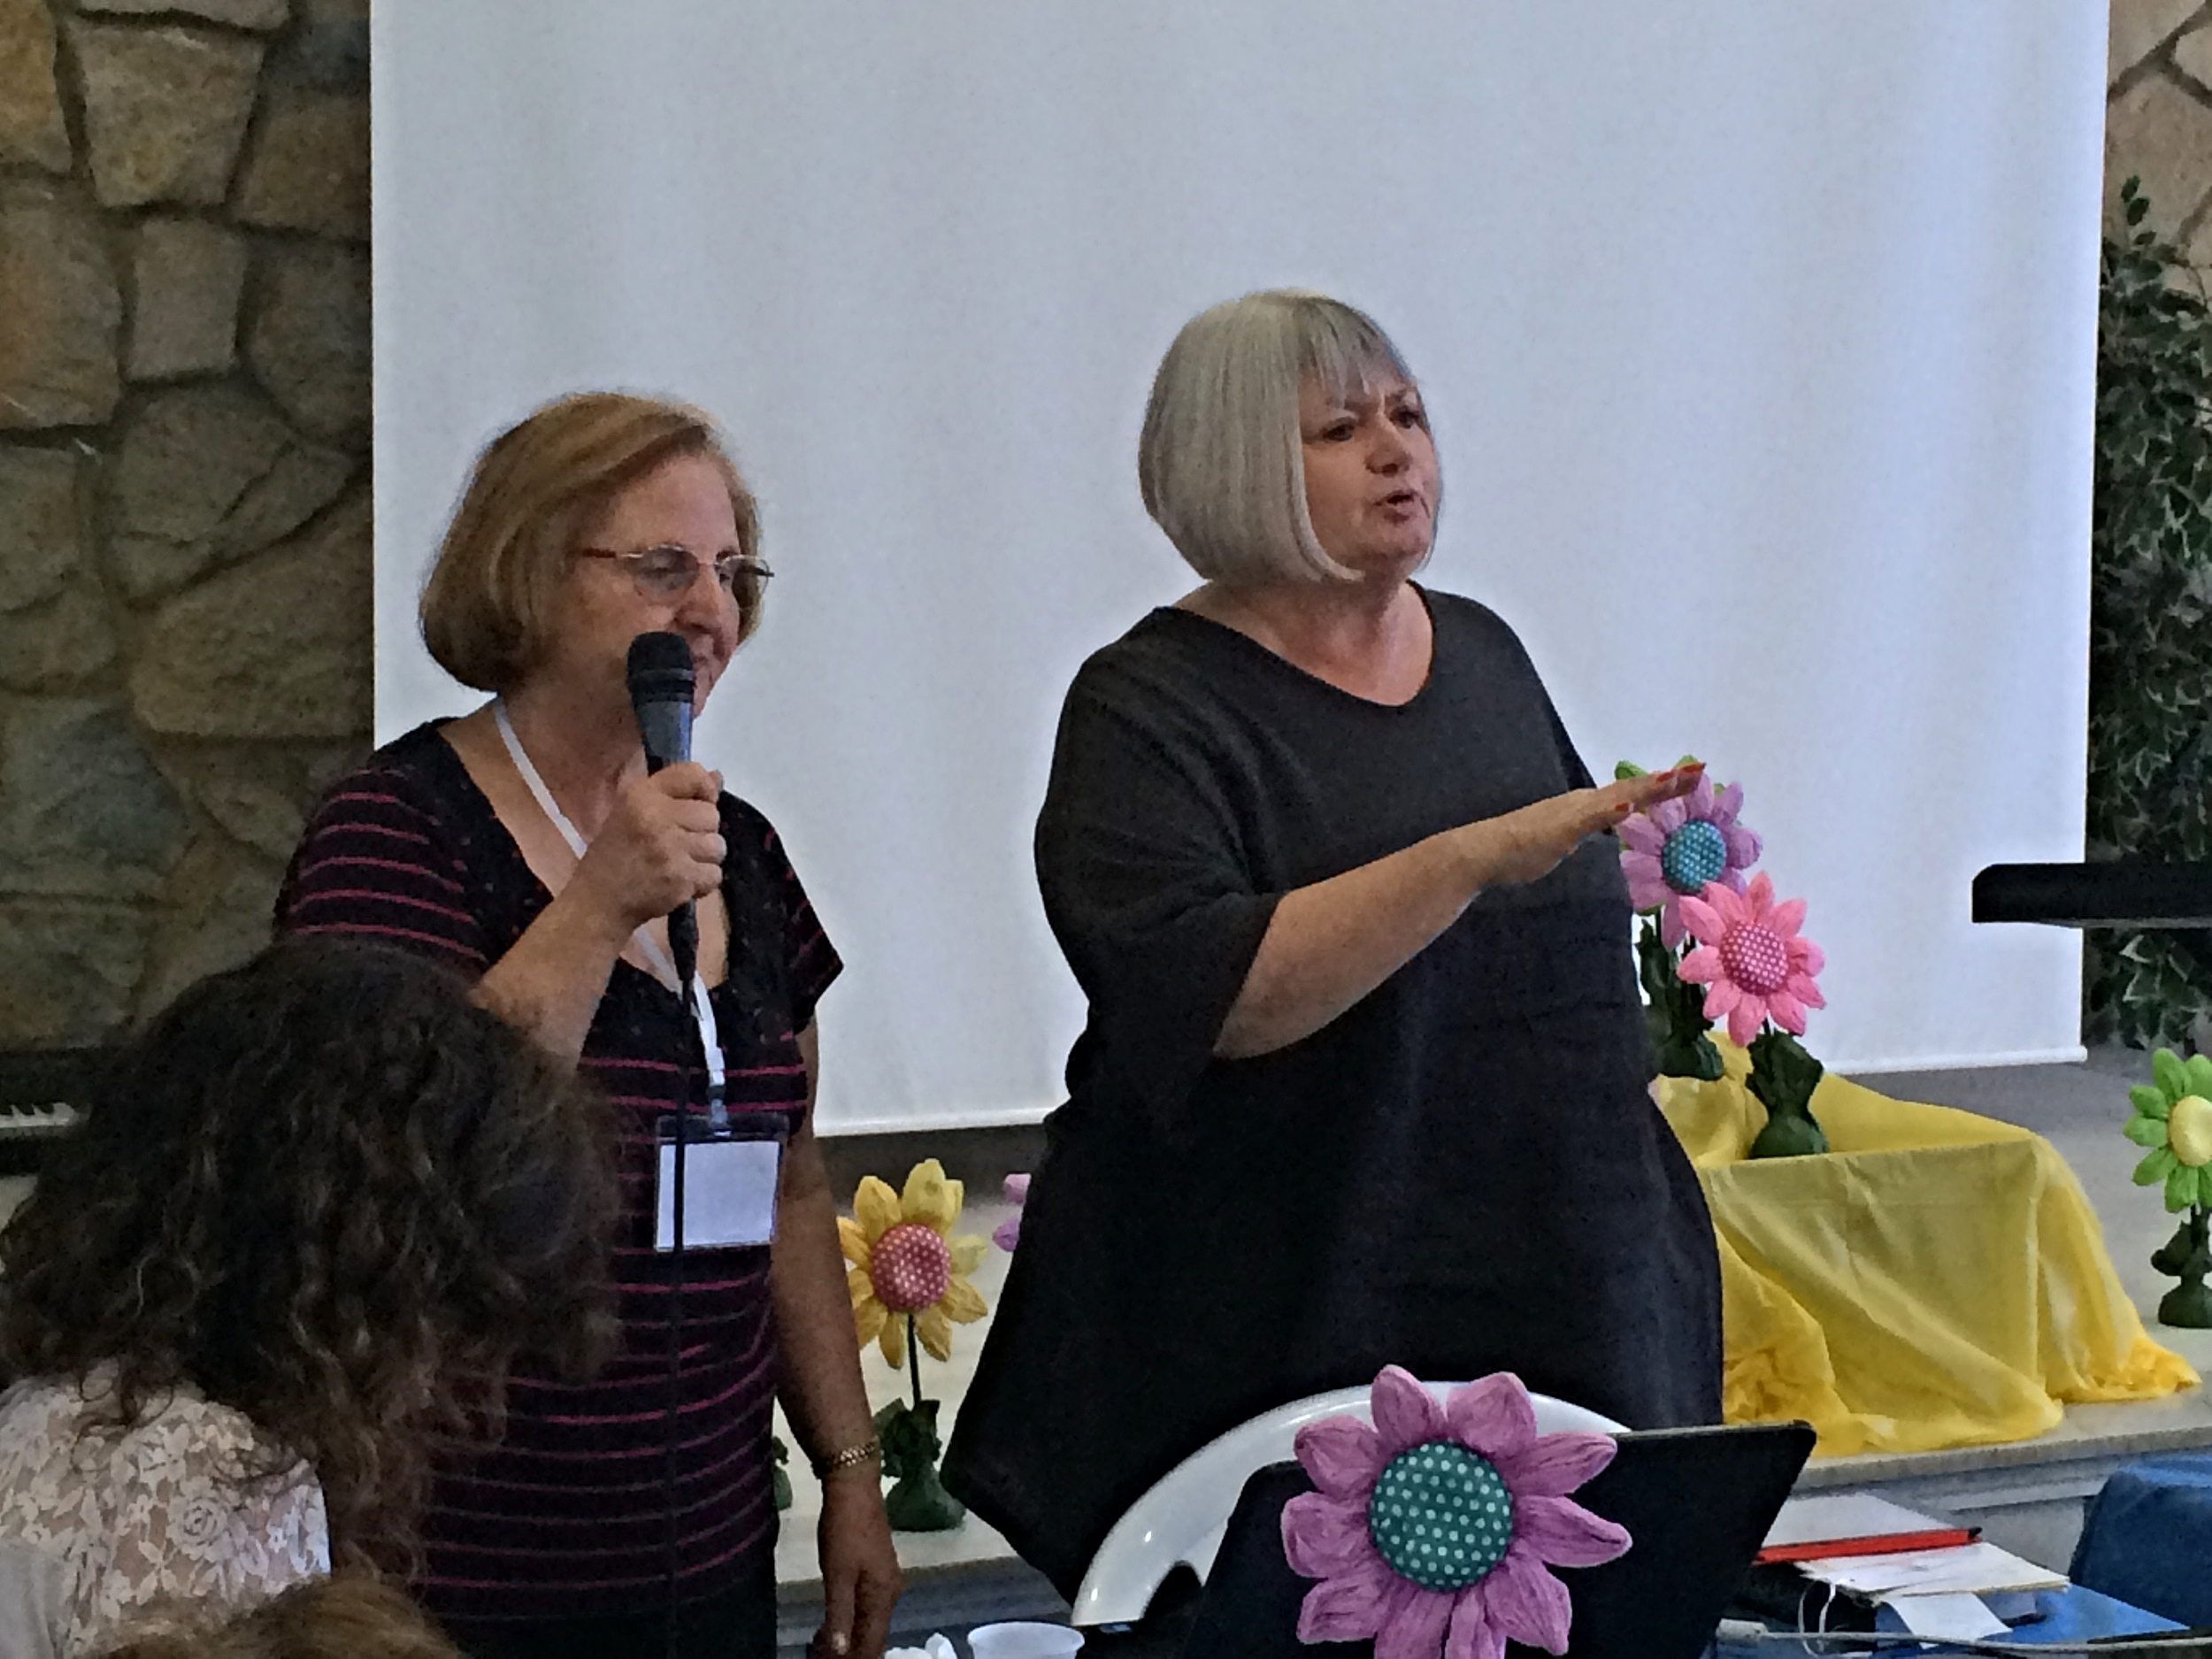 Dr. Mary Mikhael translates for our Arabic speaking sisters as Marilyn leads us in the story of the woman at the well.